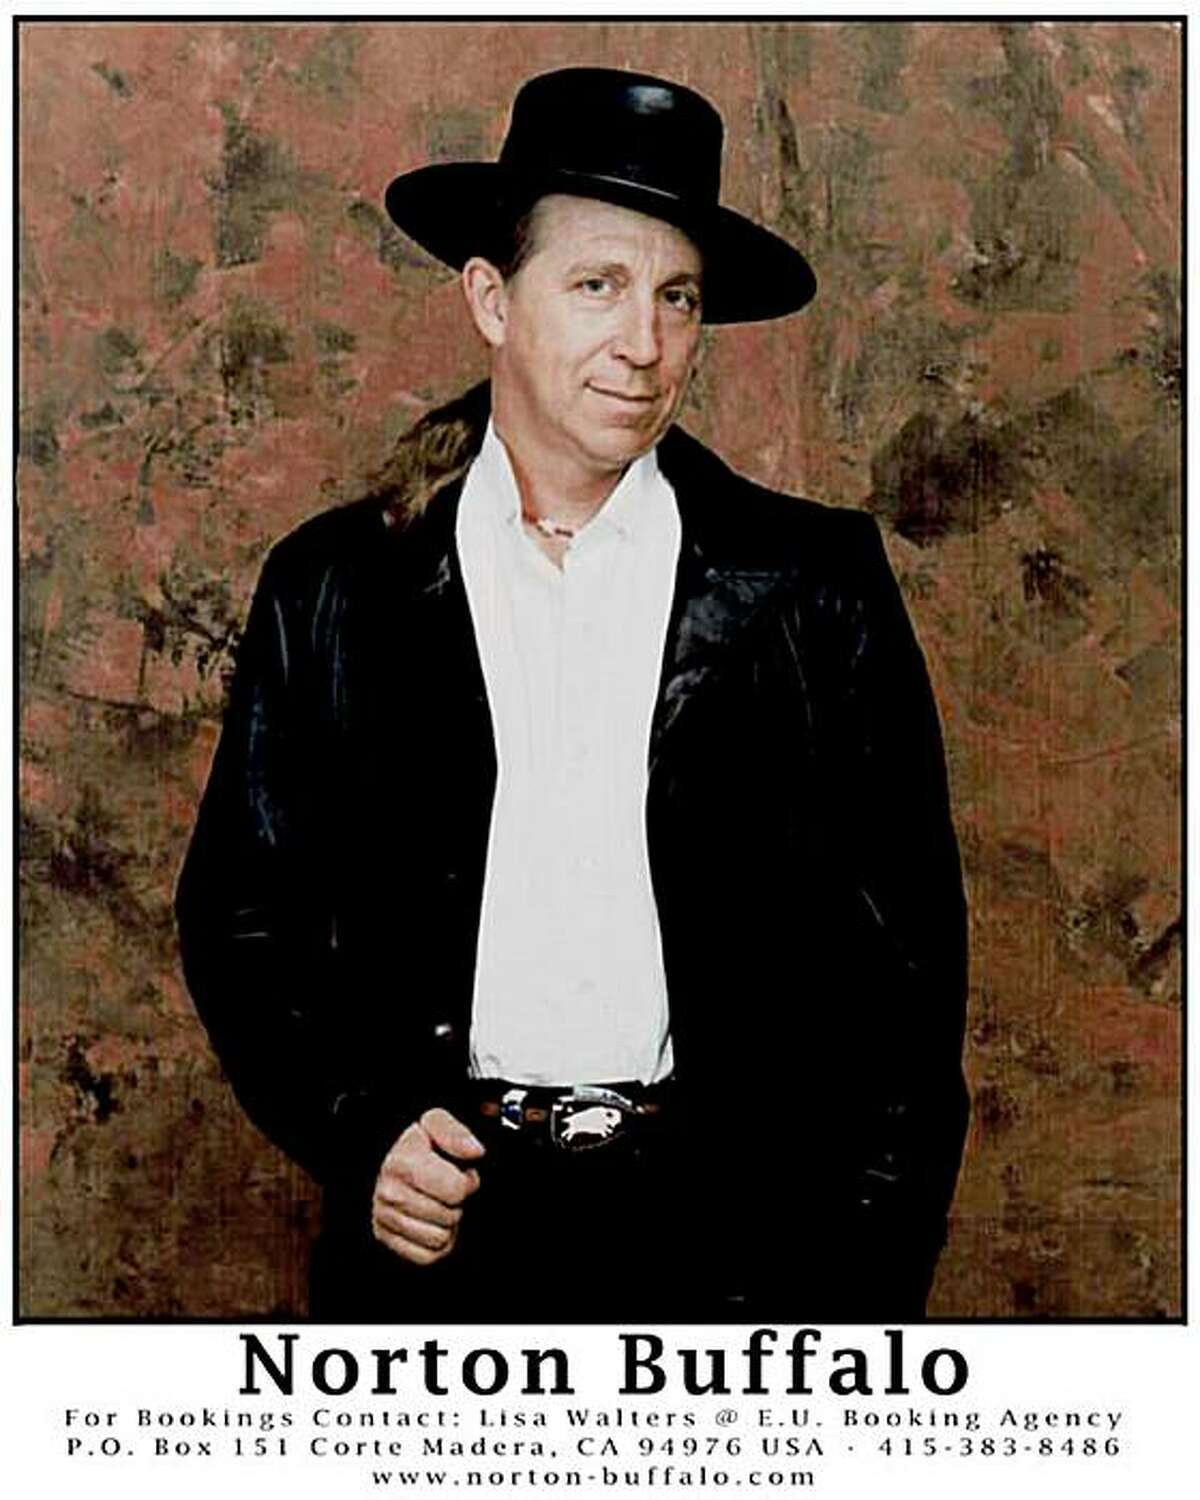 Norton Buffalo, Bay Area musician, member of the Steve Miller Band, frequent collaborator with Roy Rogers and others, died Nov.1, 2009.